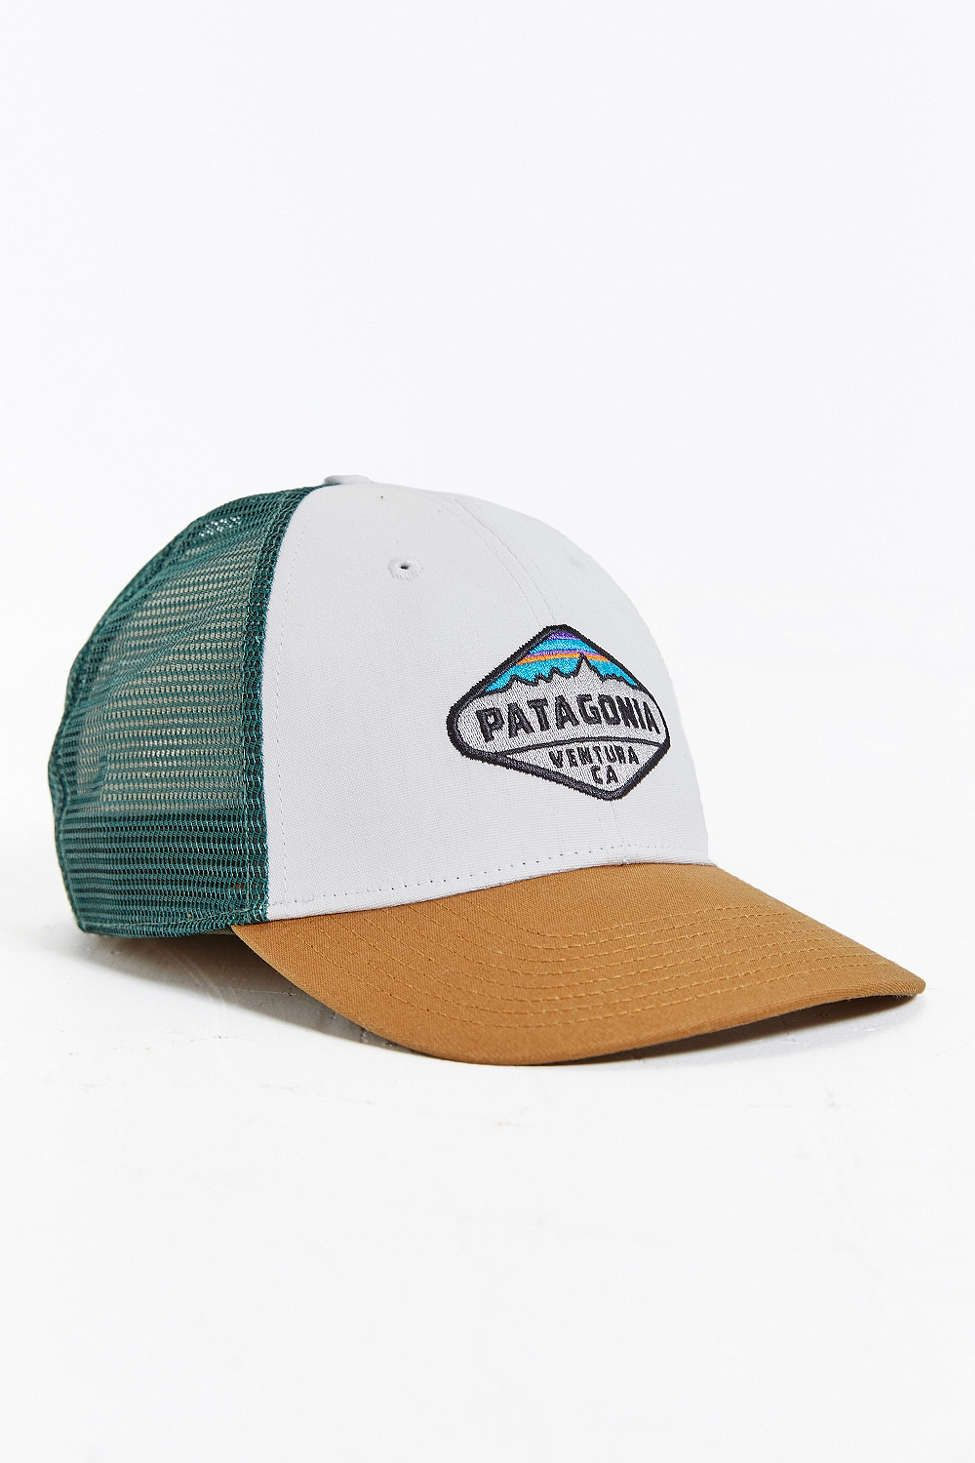 Patagonia Fitz Roy Crest LoPro Trucker Hat - Urban Outfitters ... b2283804018